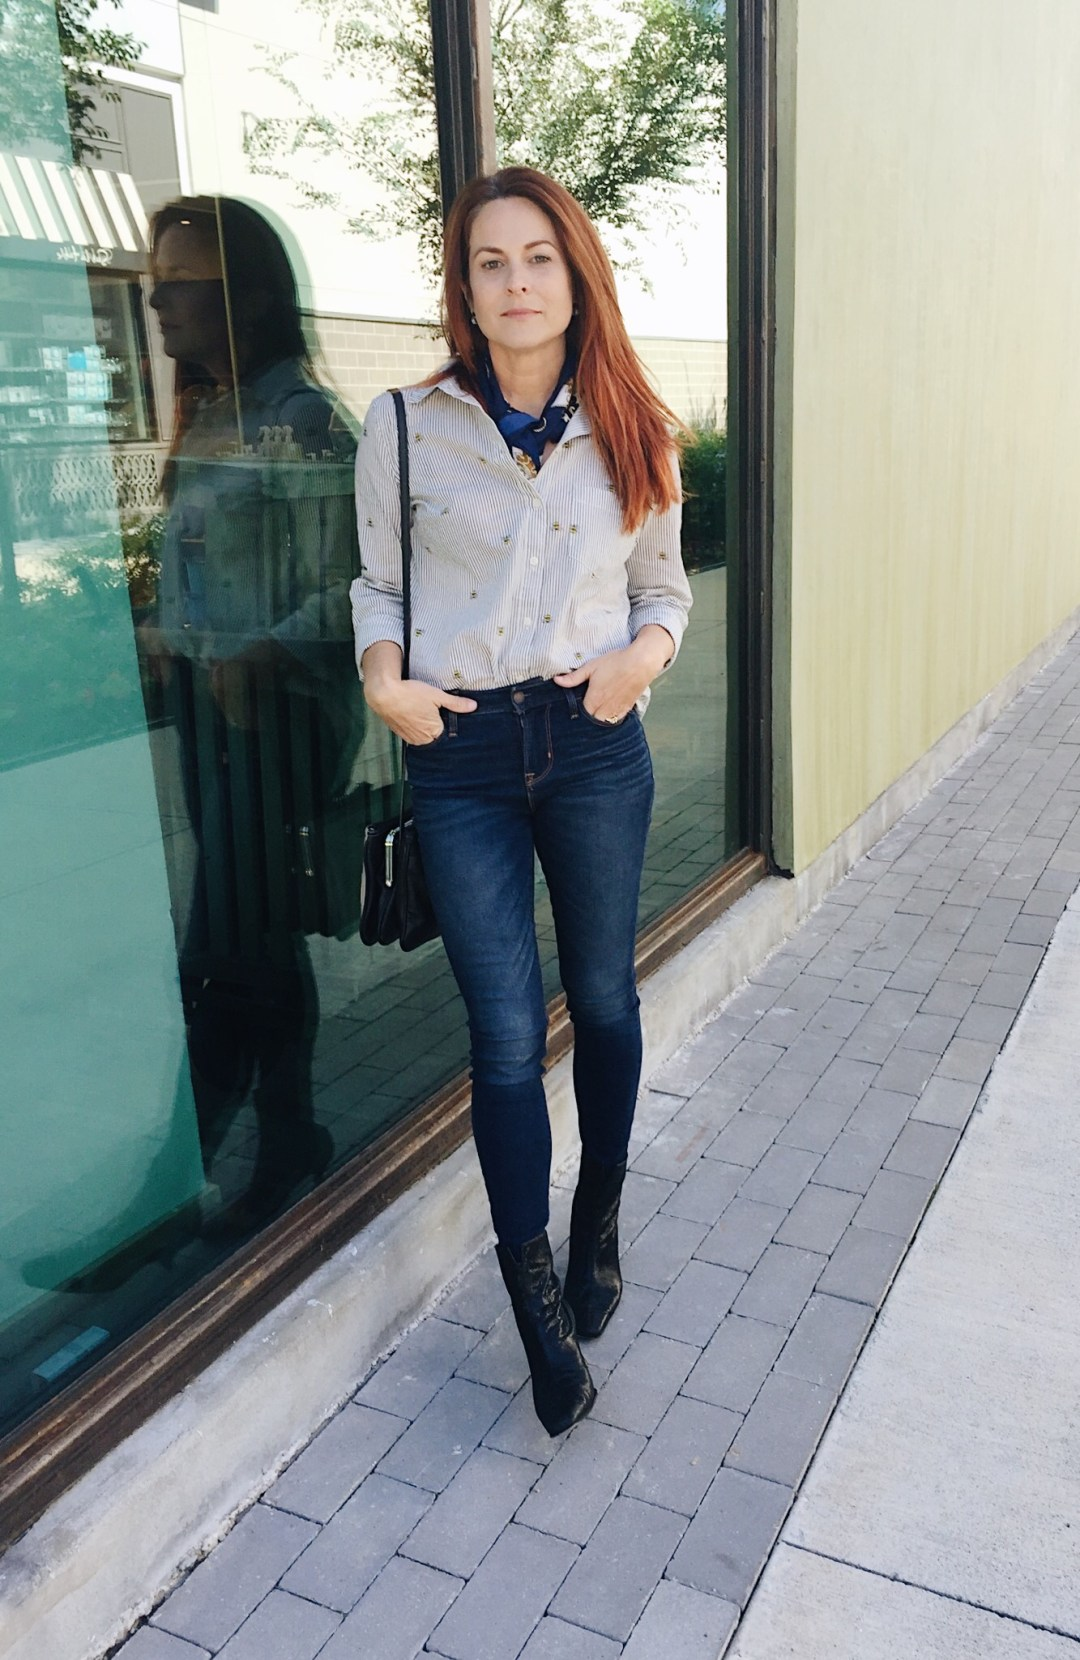 old navy, high waisted jeans, buttom up shirt, bumble bee shirt, black booties, stuart weitaman, nine west bag, styling with a silk scarf, #casual style